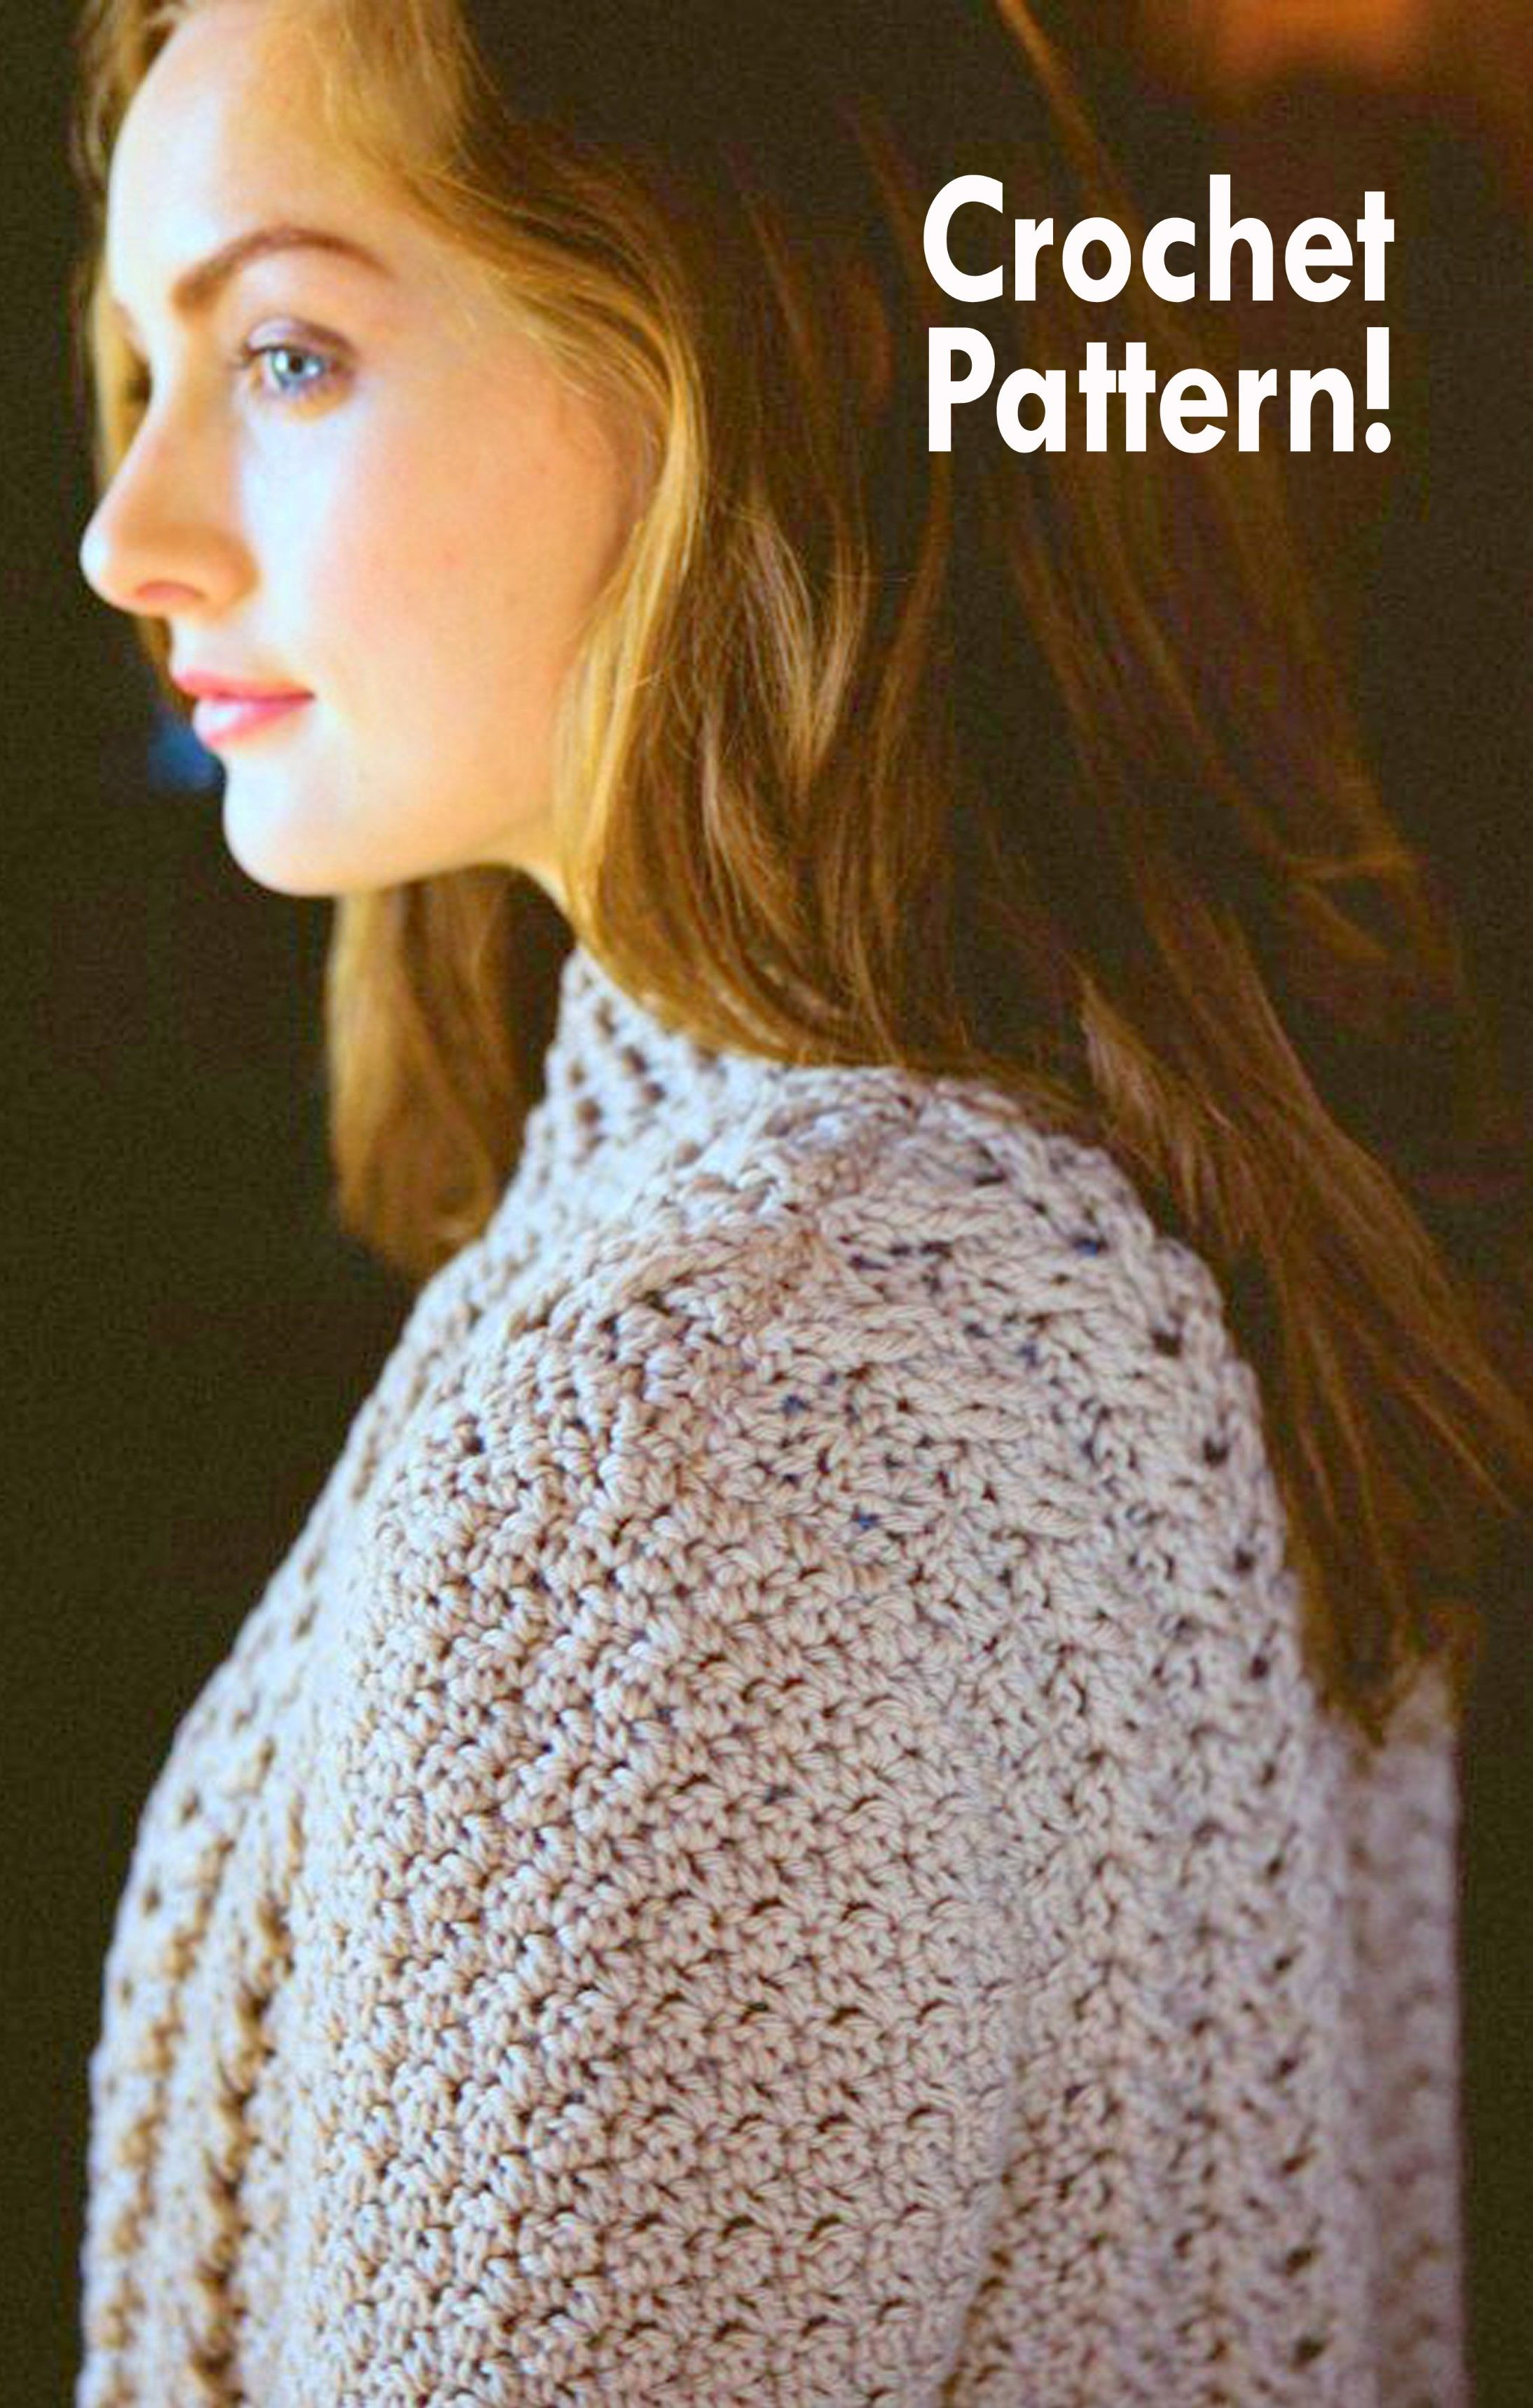 Crochet Patterns for Modern Cabled Garments, crochet pattern Accessories,  Crochet Pattern poncho, Crochet Pattern shawl, Crochet Pattern hats, ...